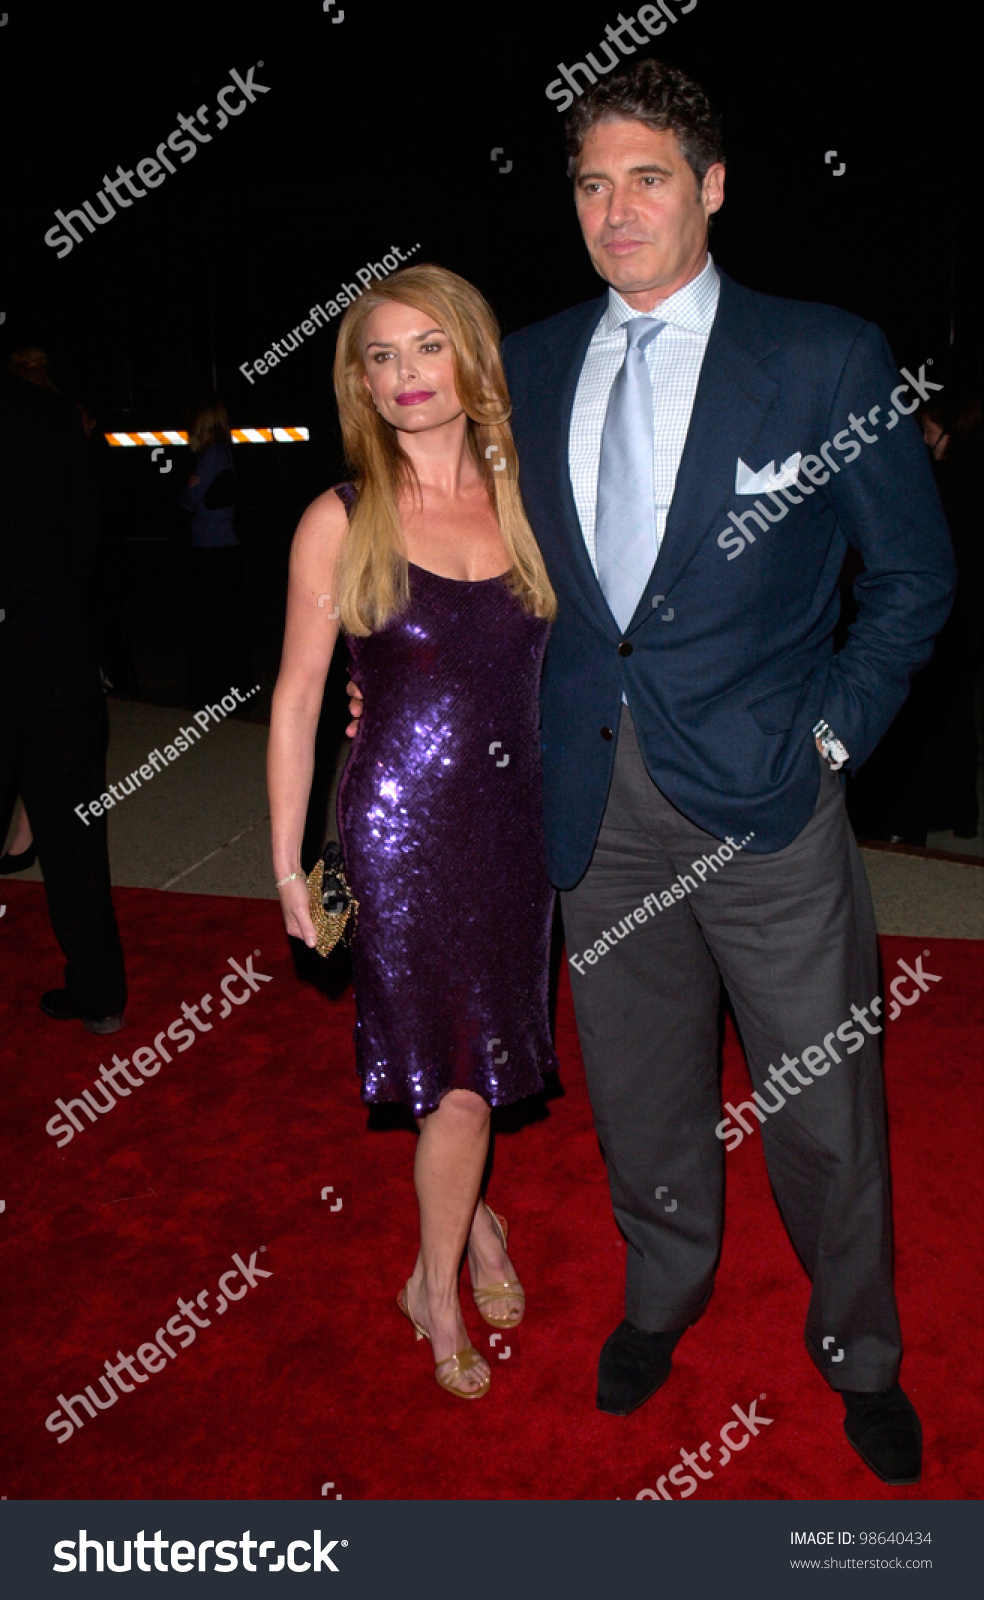 Roma Downey and husband